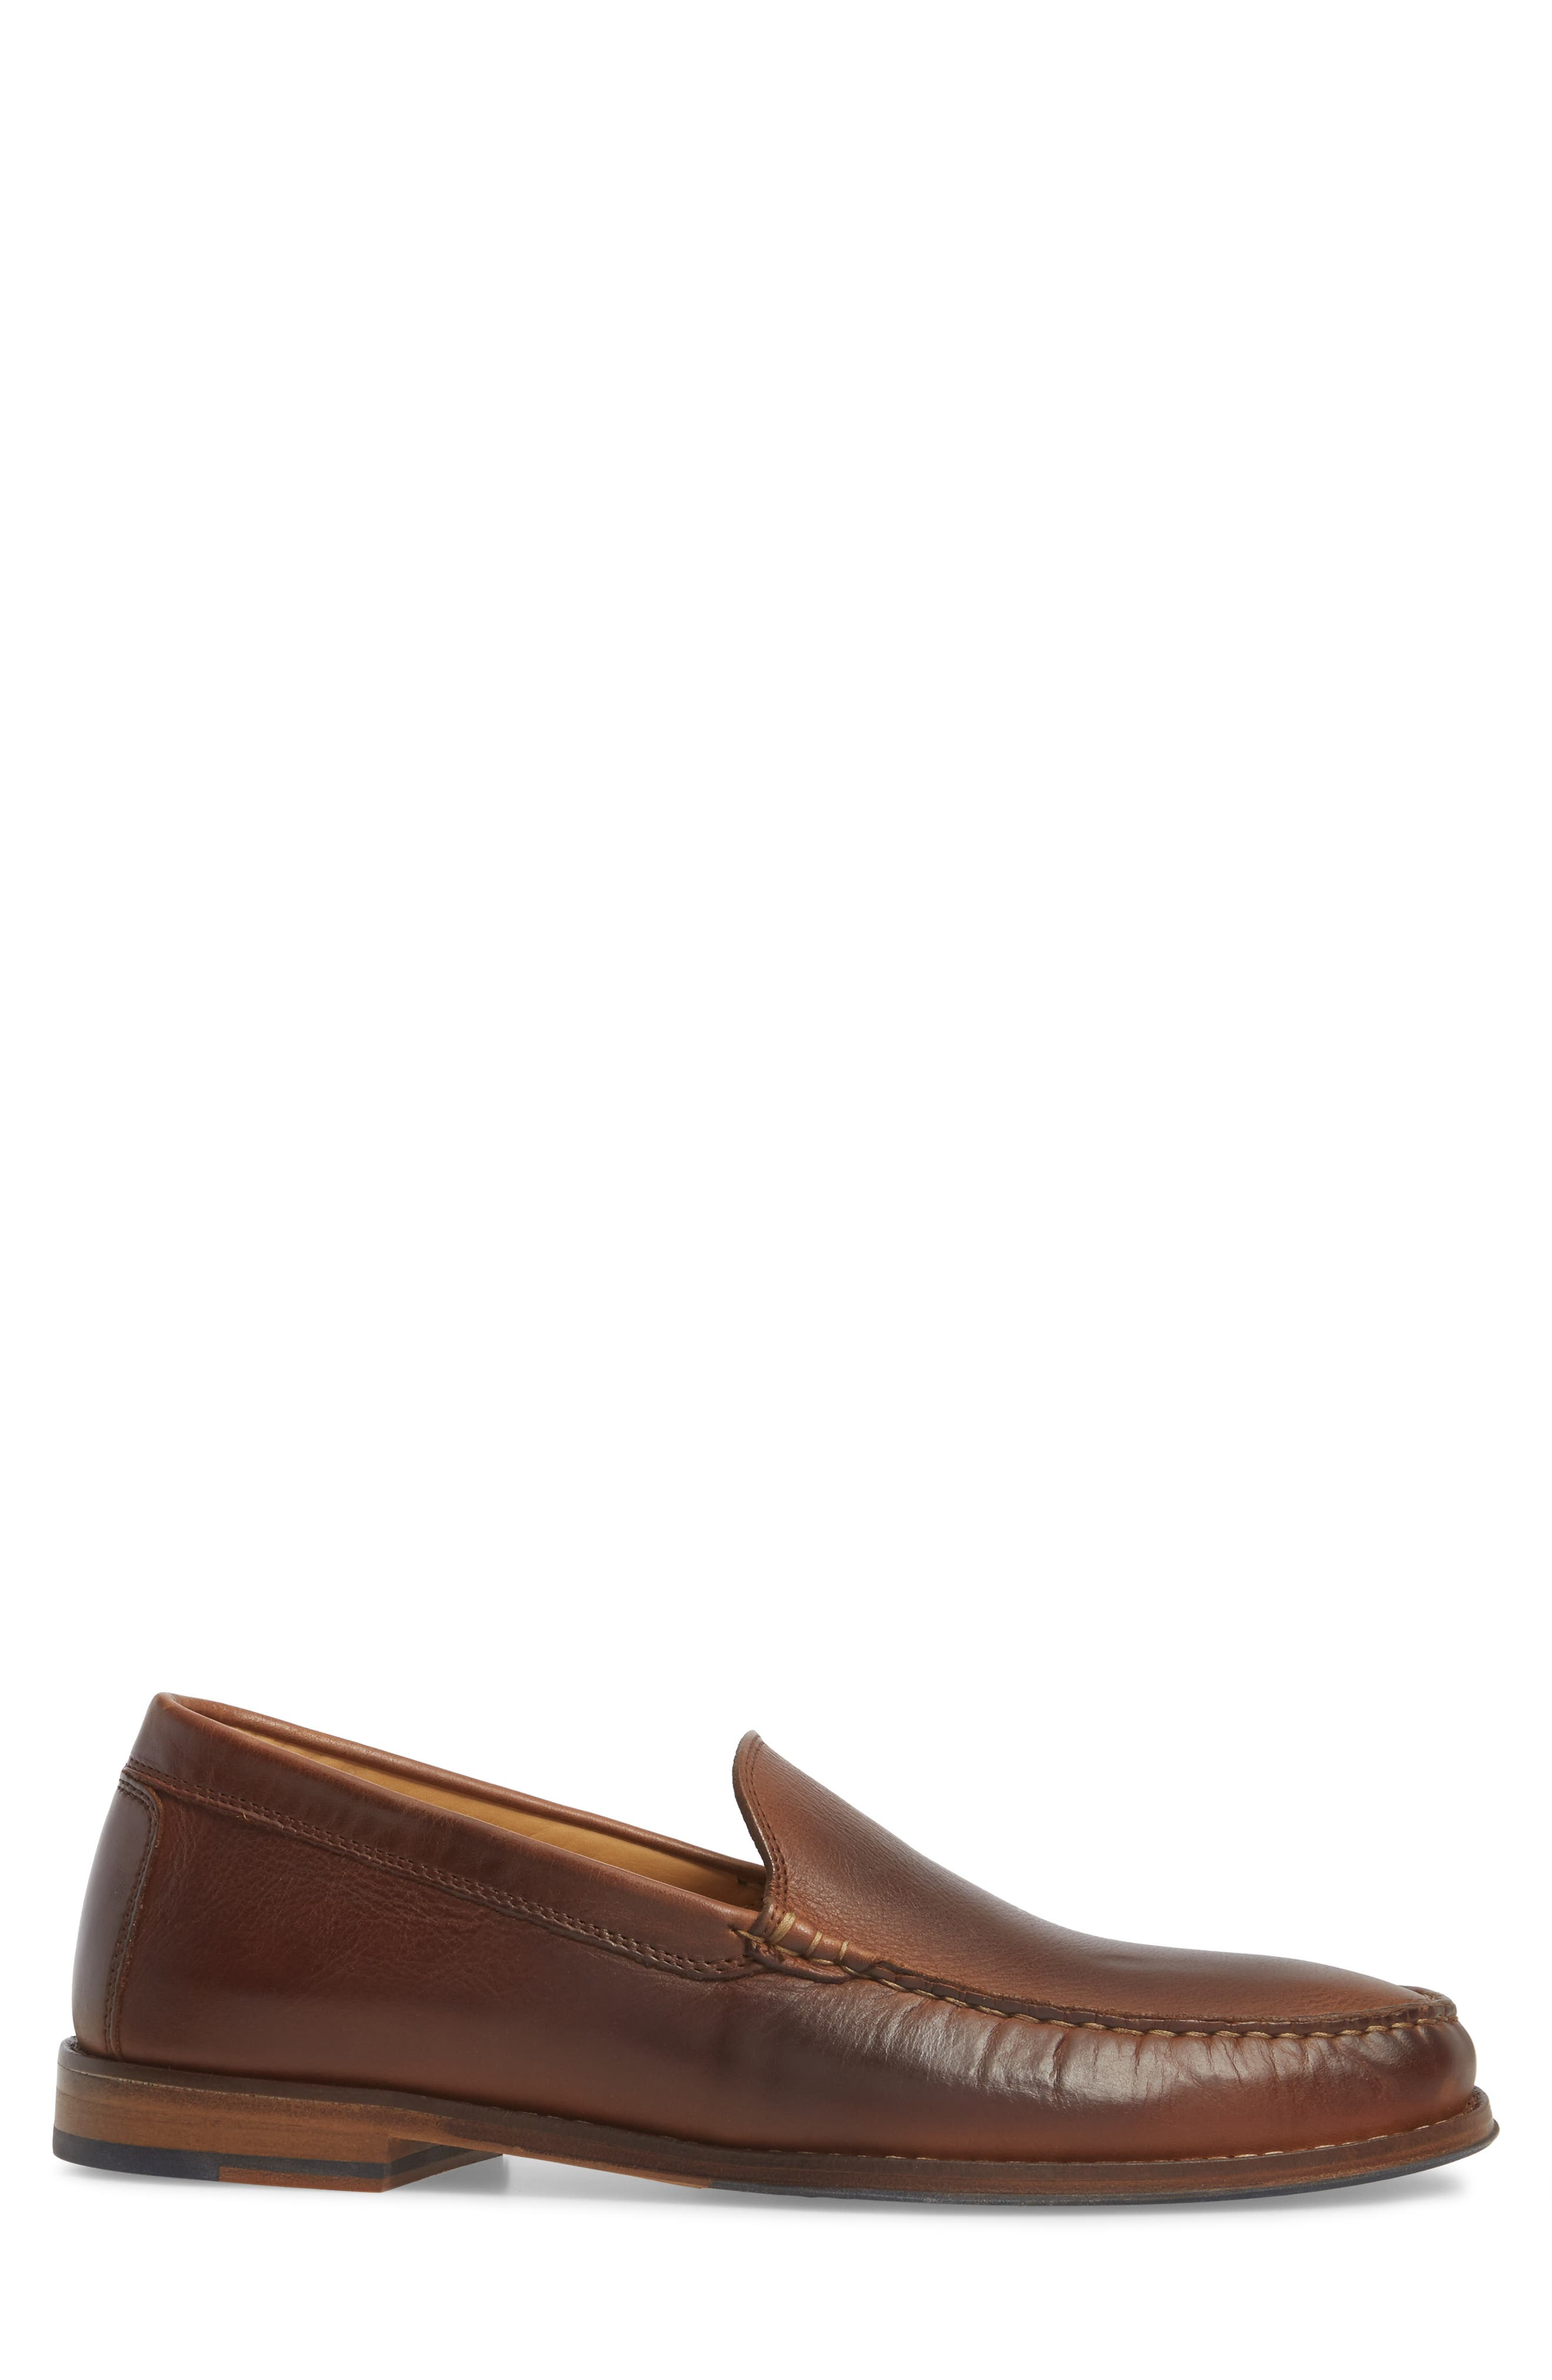 Caldwells Loafer,                             Alternate thumbnail 3, color,                             LIGHT BROWN DISTRESSED LEATHER